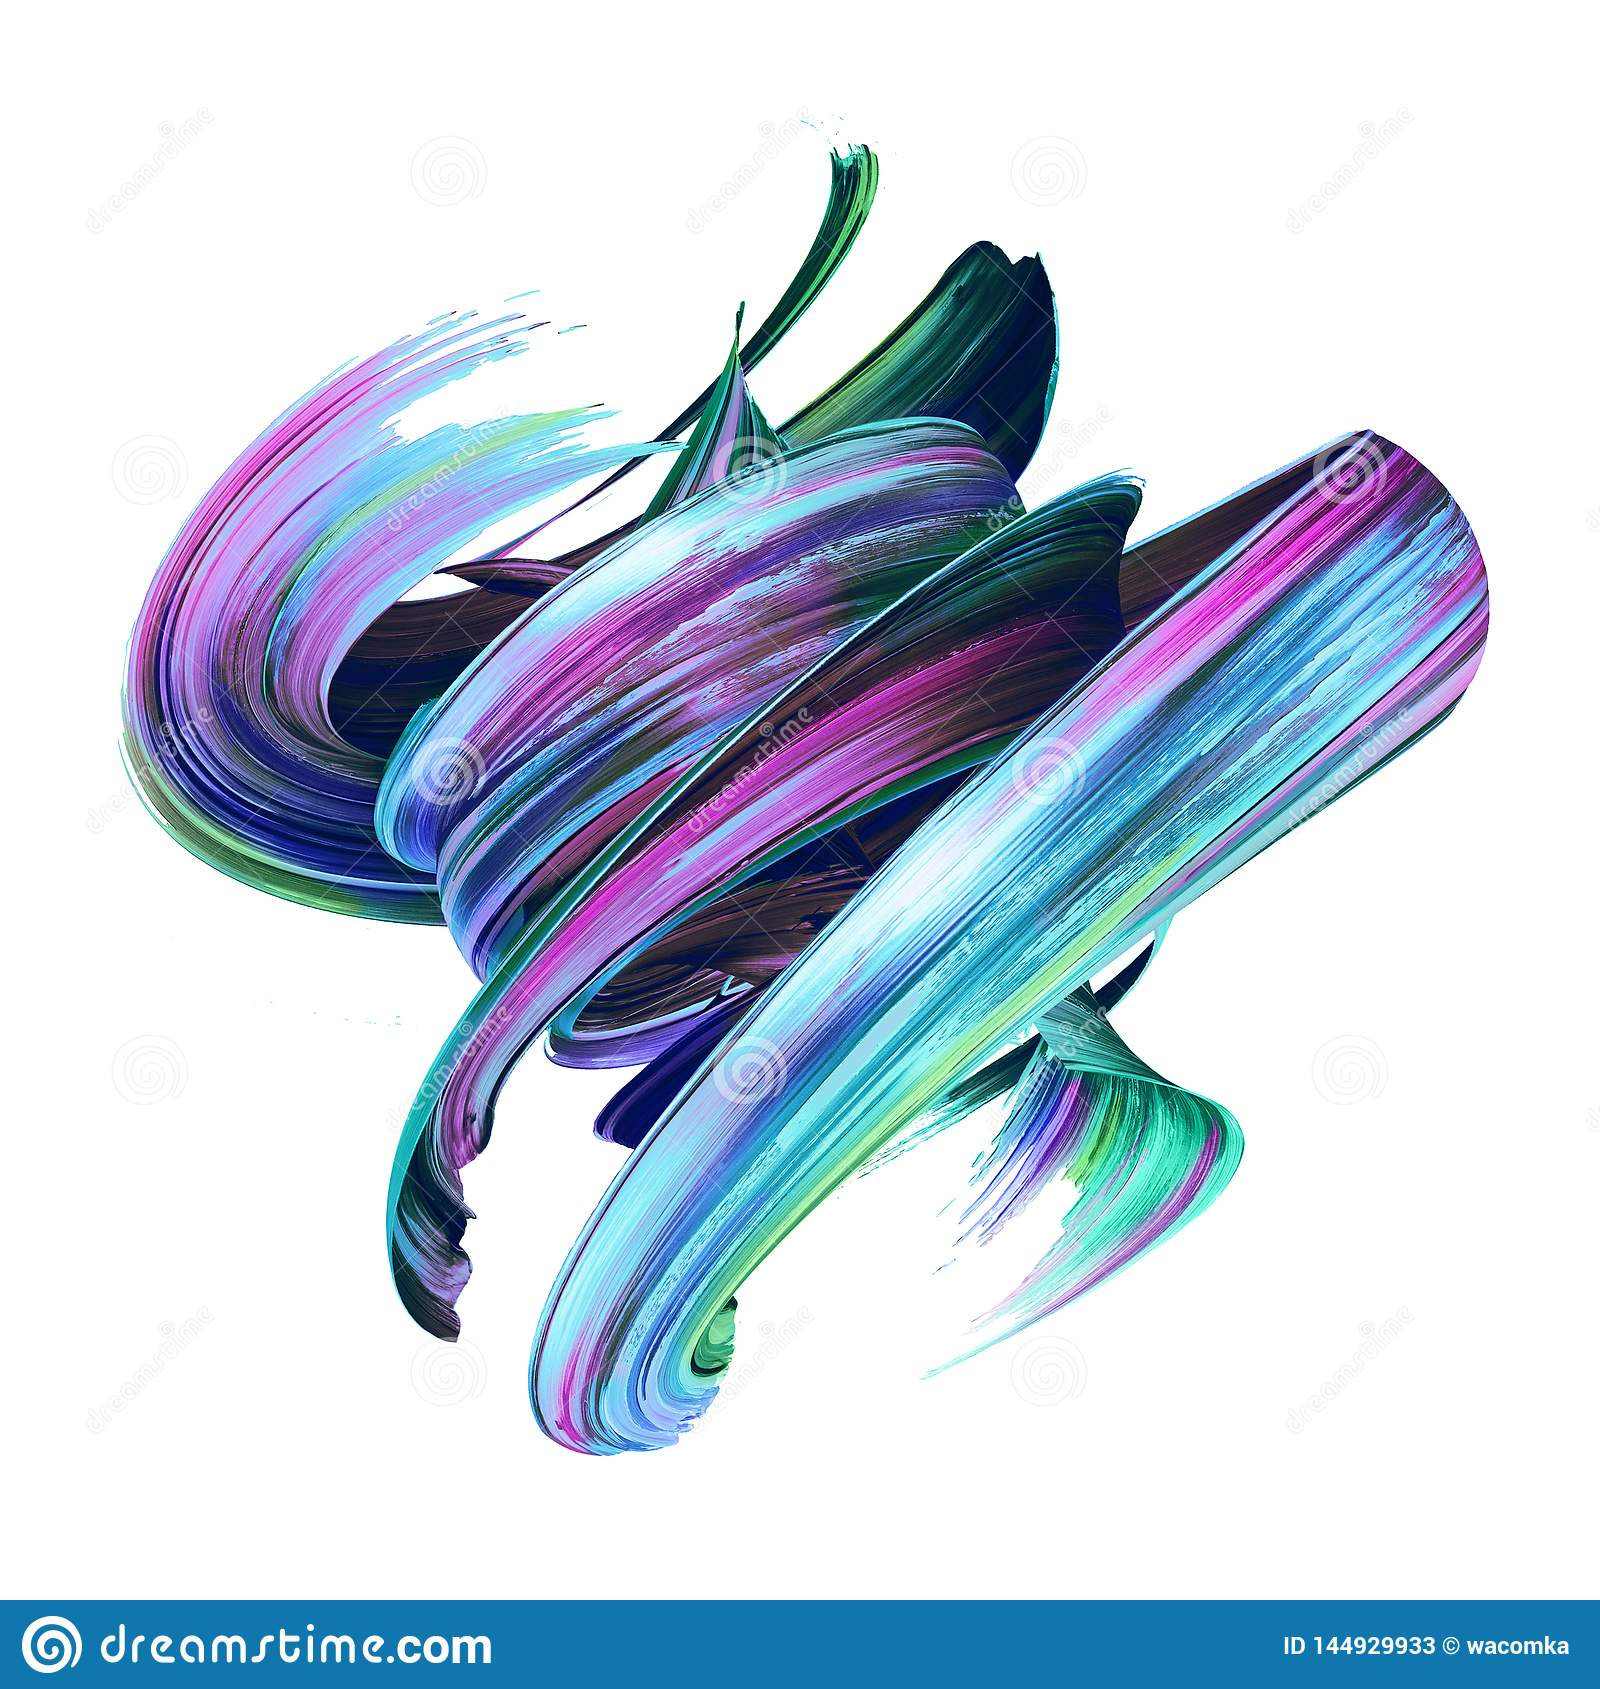 3d Render, Abstract Brush Stroke, Creative Smear Clip Art, Paint